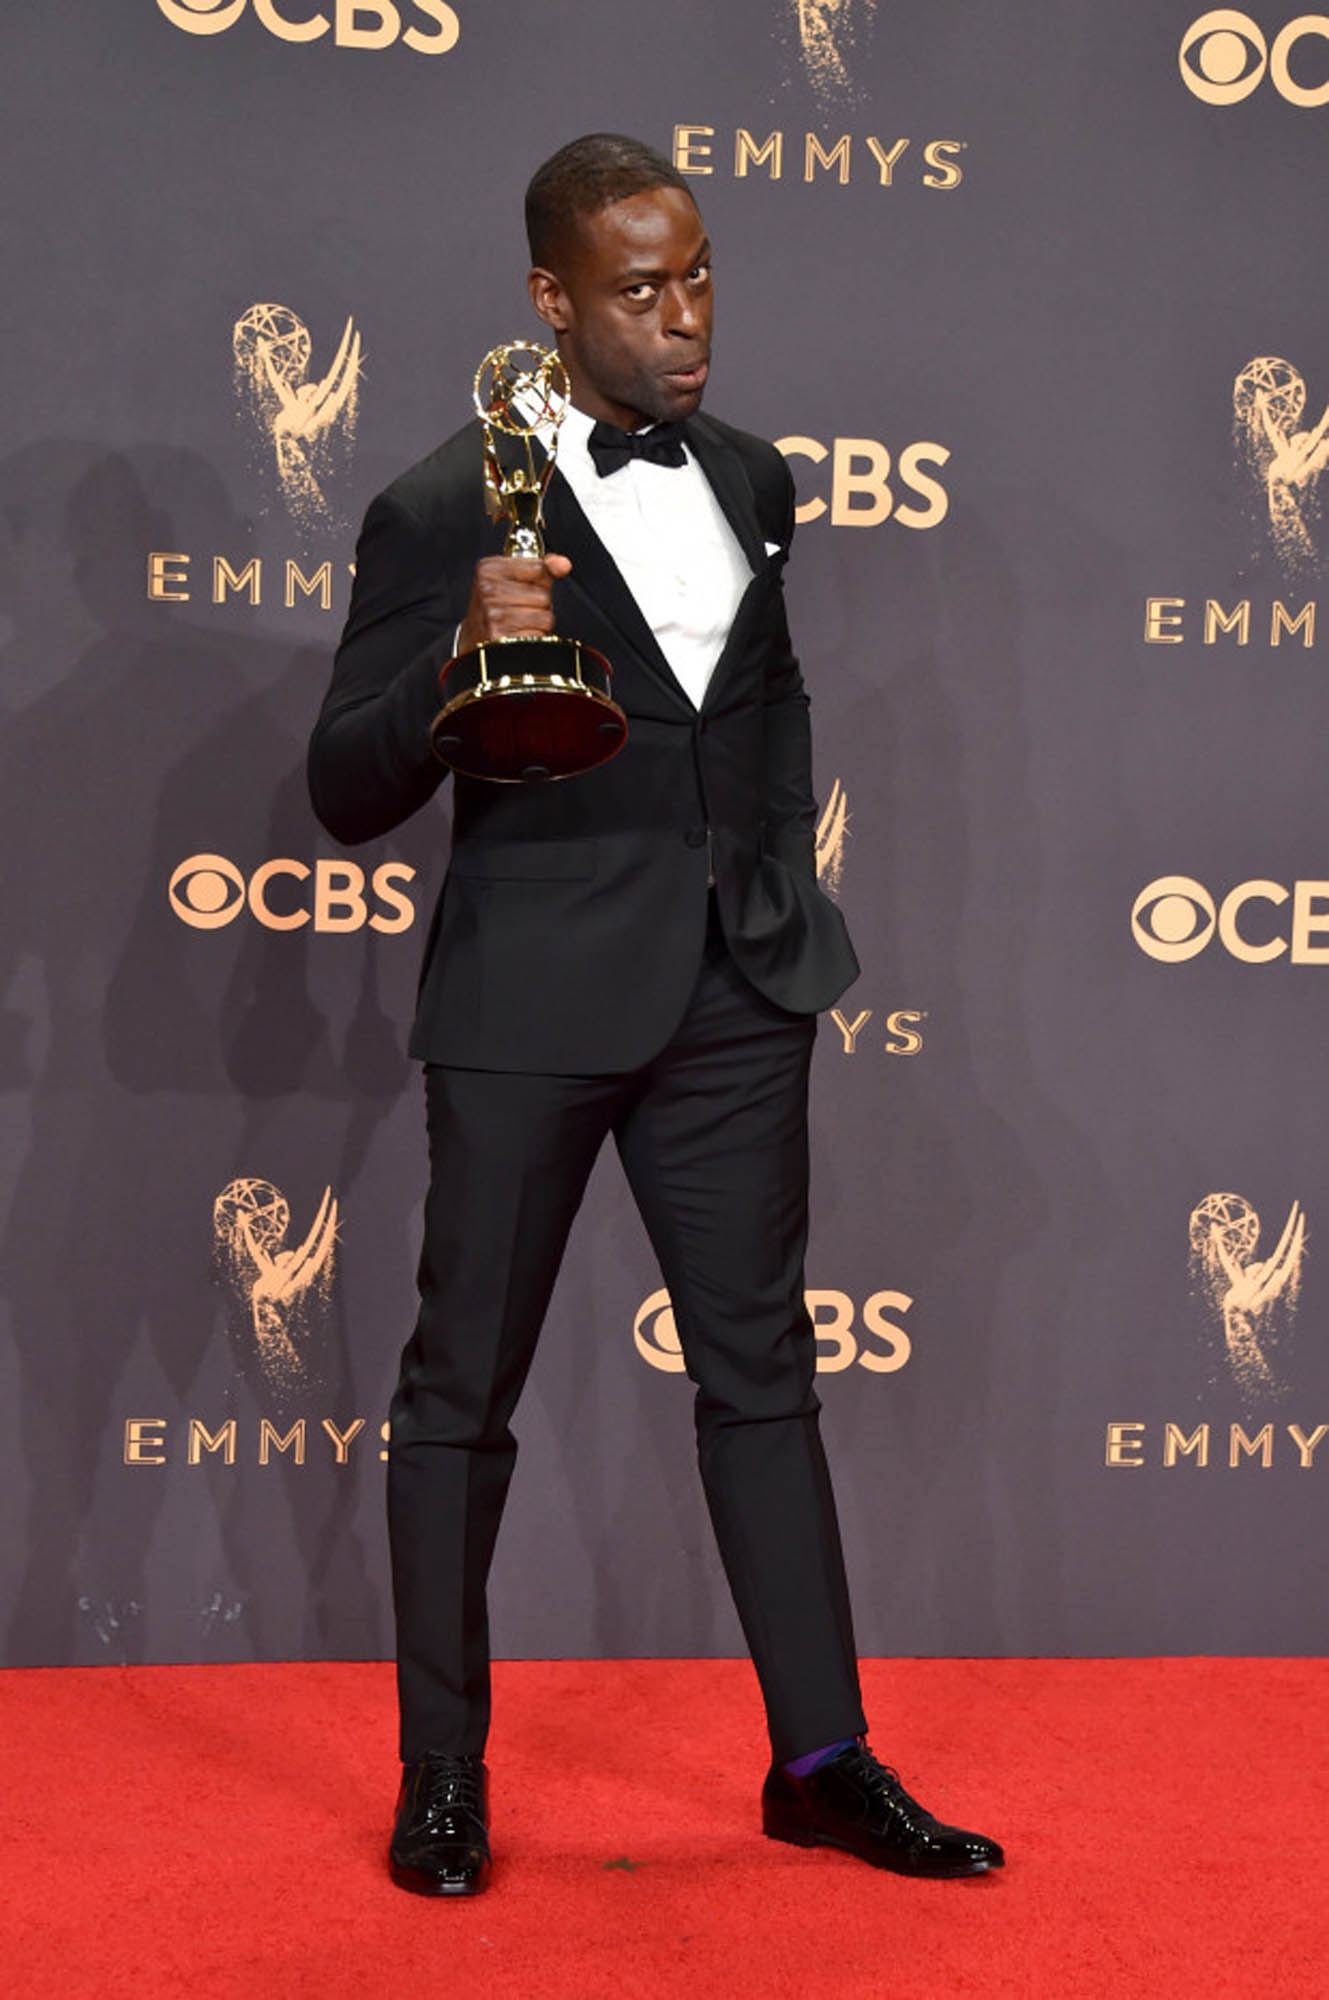 Styling Sterling Brown for the Emmy's 2017